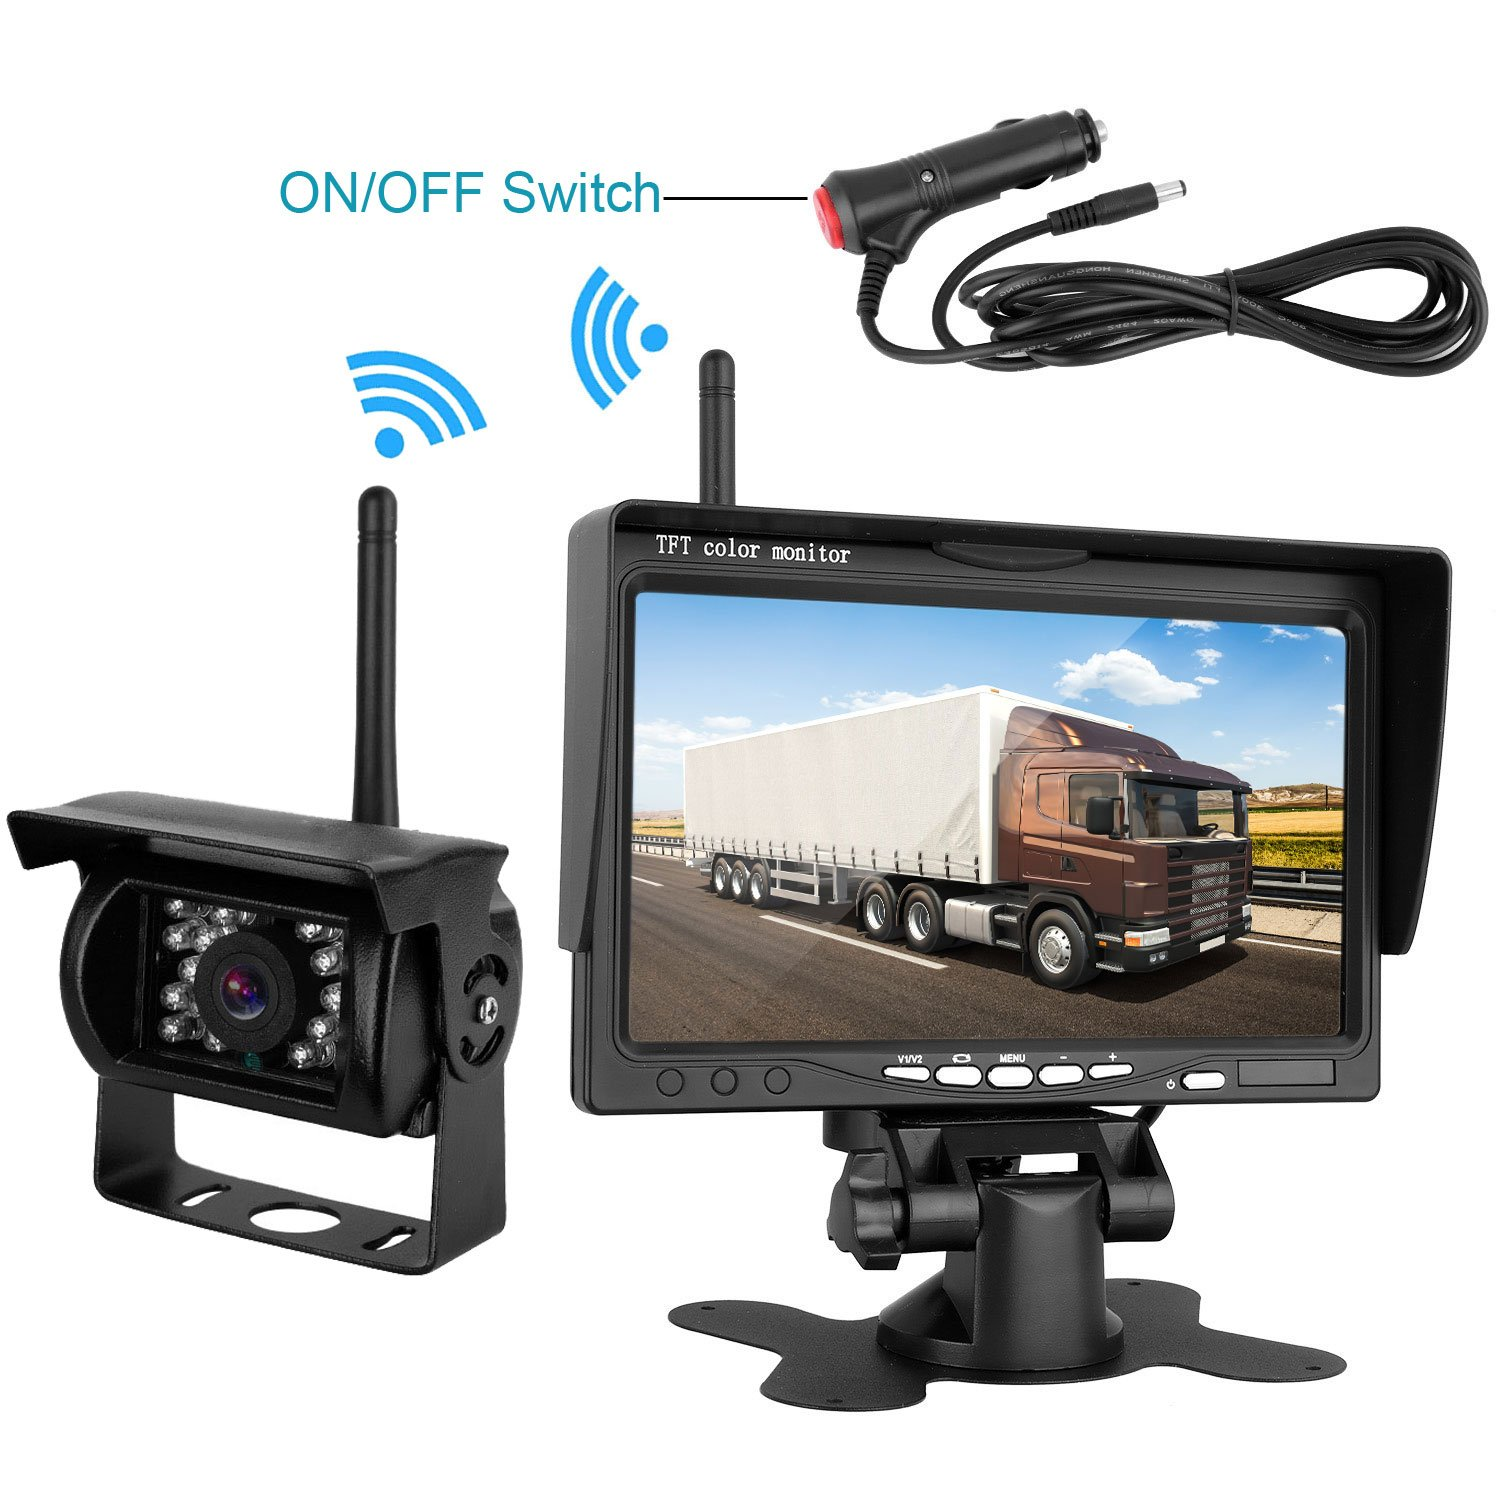 Emmako Backup Camera Wireless and 7'' Monitor Kit For Truck/Trailers/RV/5th Wheel//Campers/Motorhome Waterproof Night Vision Built-in Wireless Rear View Camera Parking System